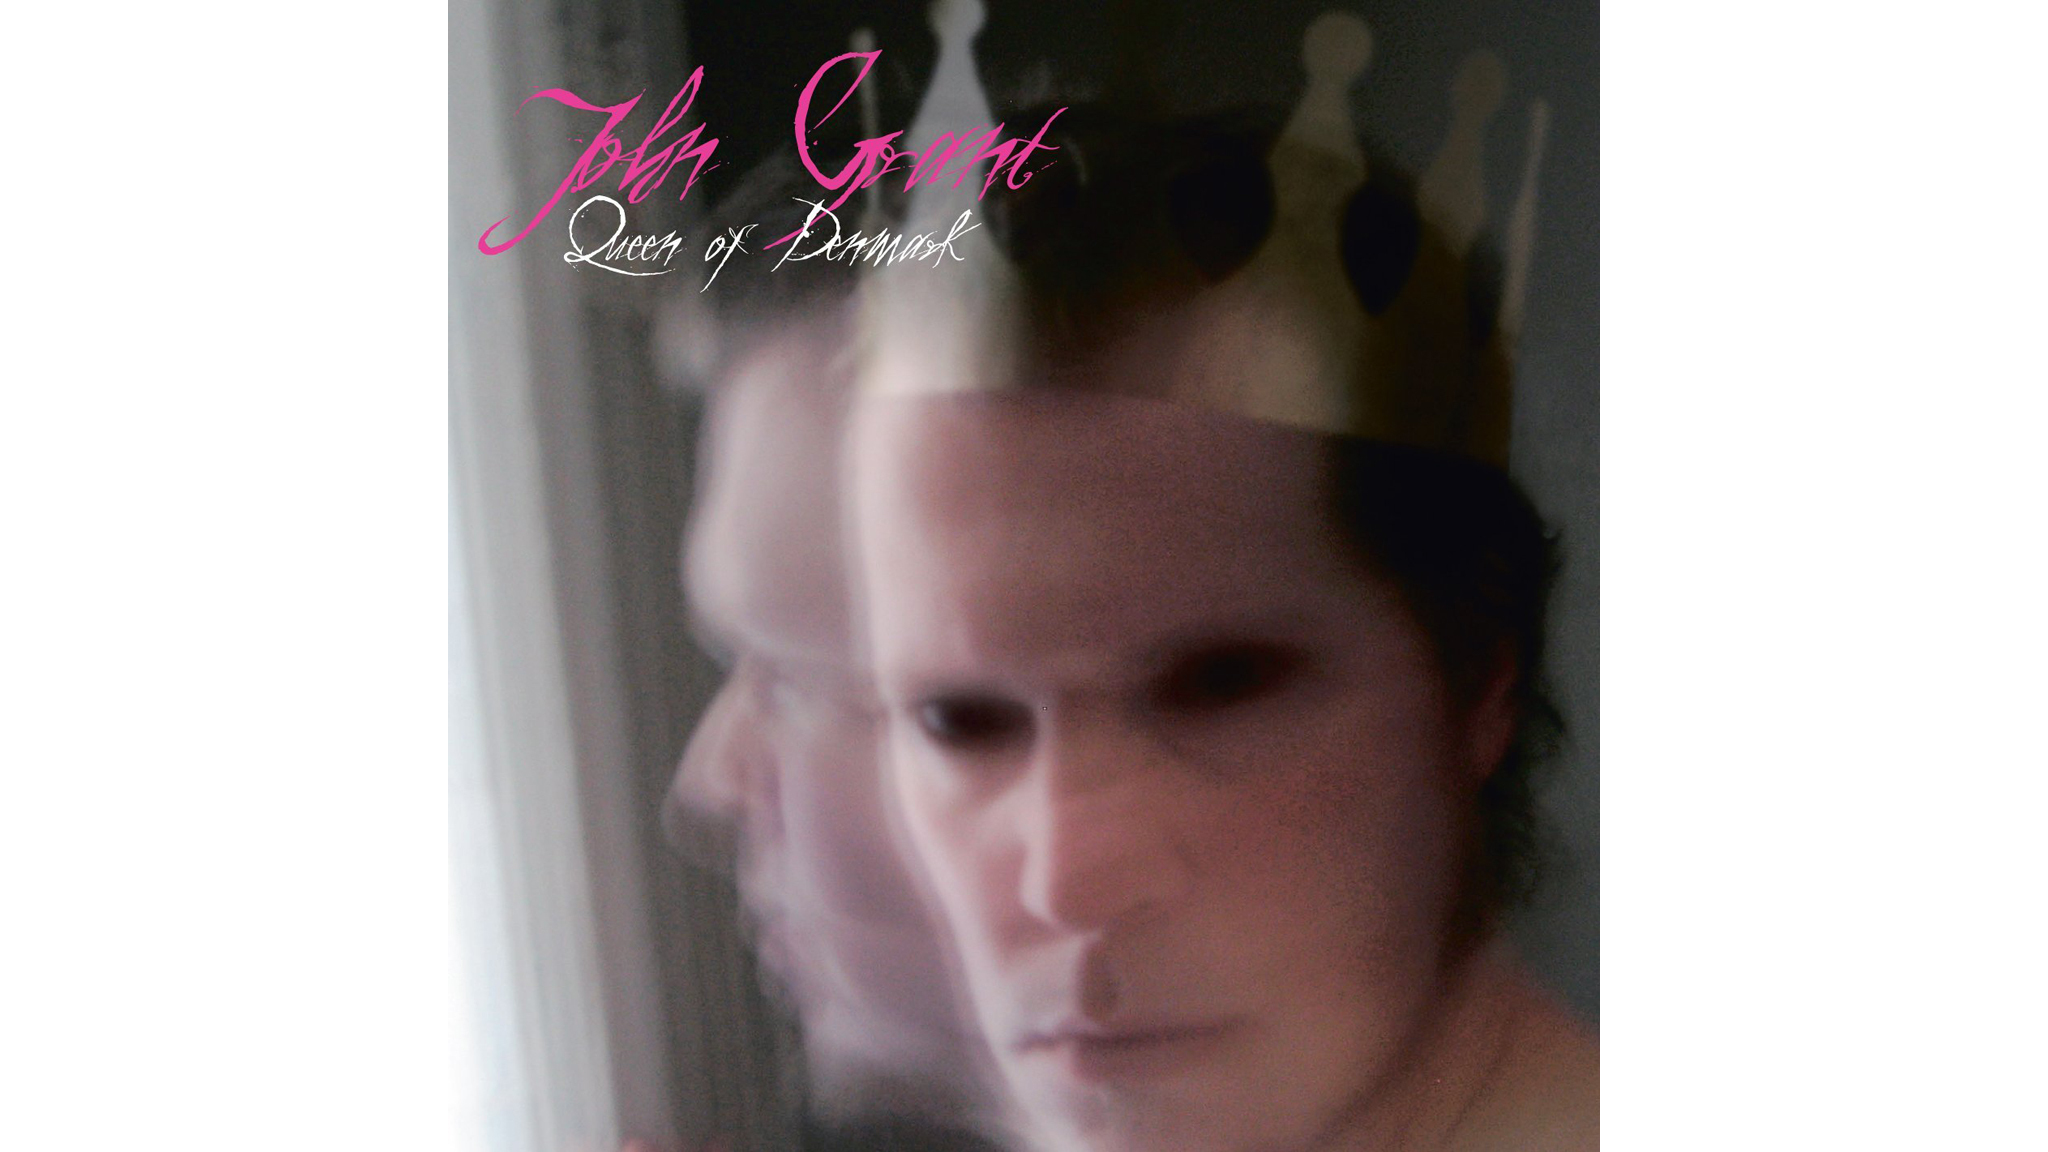 The 50 best sad songs: 'Where Dreams Go To Die' – John Grant